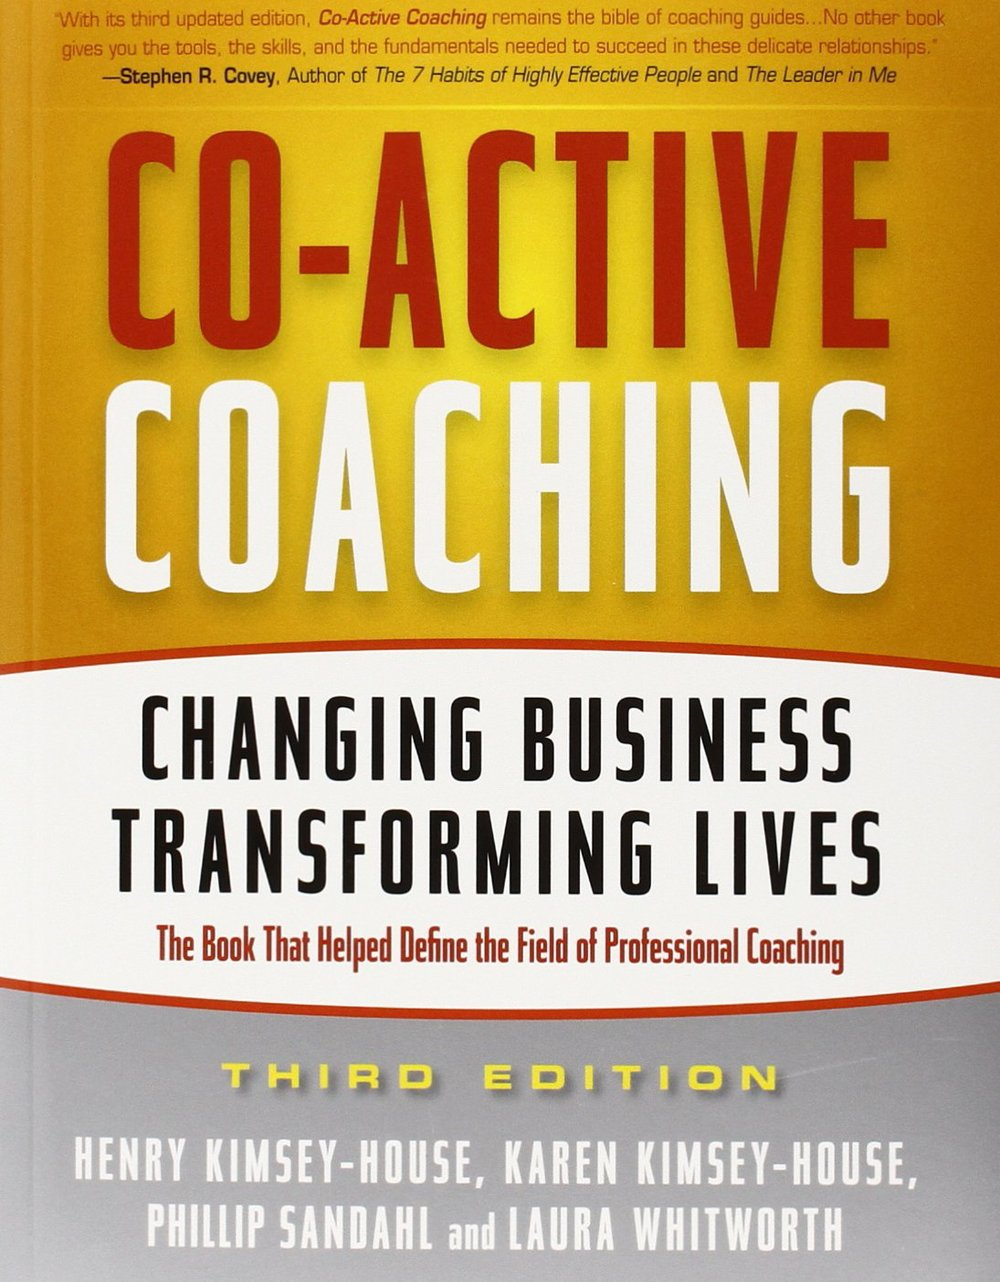 "<a href=""http://amzn.to/1J4MwJA"">Co-Active Coaching<strong>The discipline of coaching assumes wholeness, creativity, and the ability to solve problems. Learn how in this guide…</strong></a>"